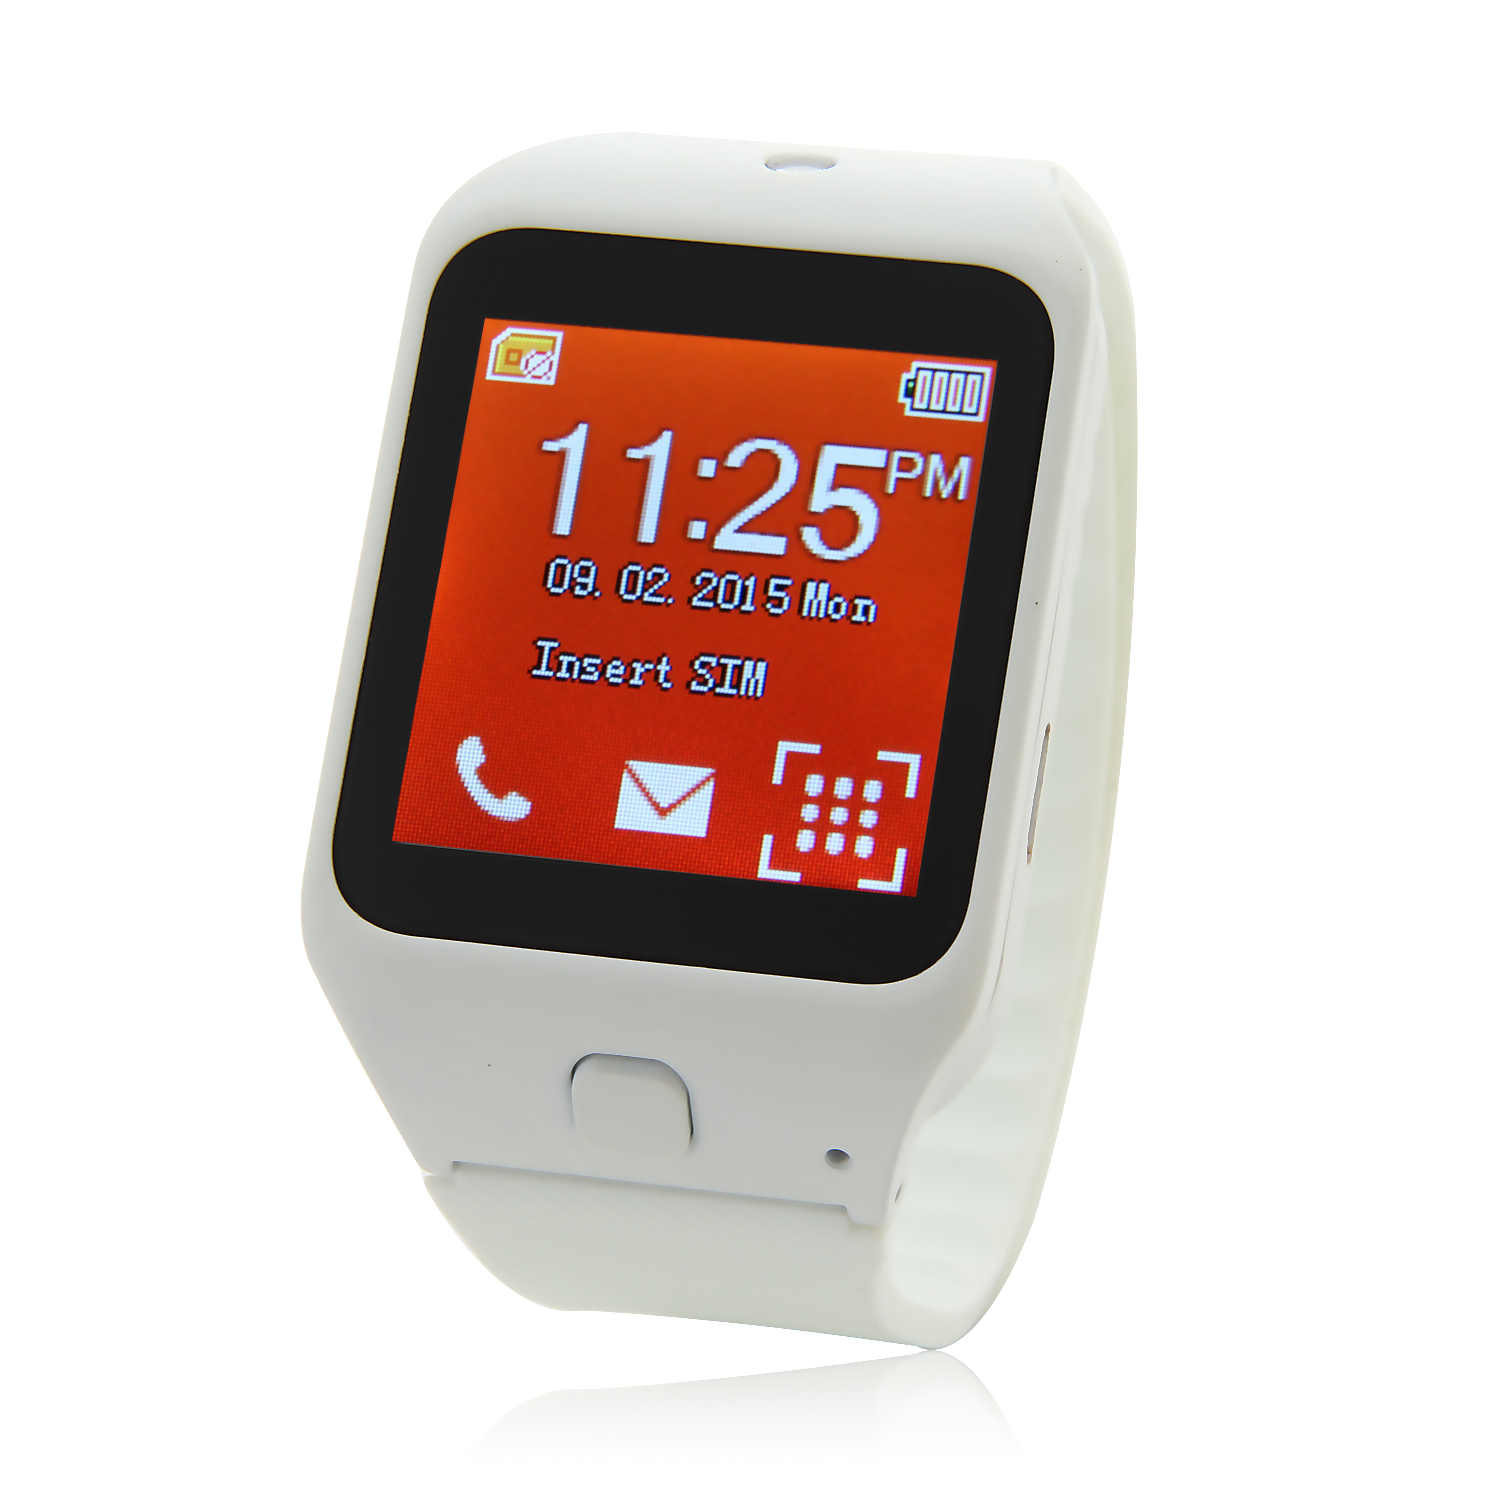 Atongm W003 Smart Watch Phone 1.44 Inch Touch Screen Bluetooth Camera FM White